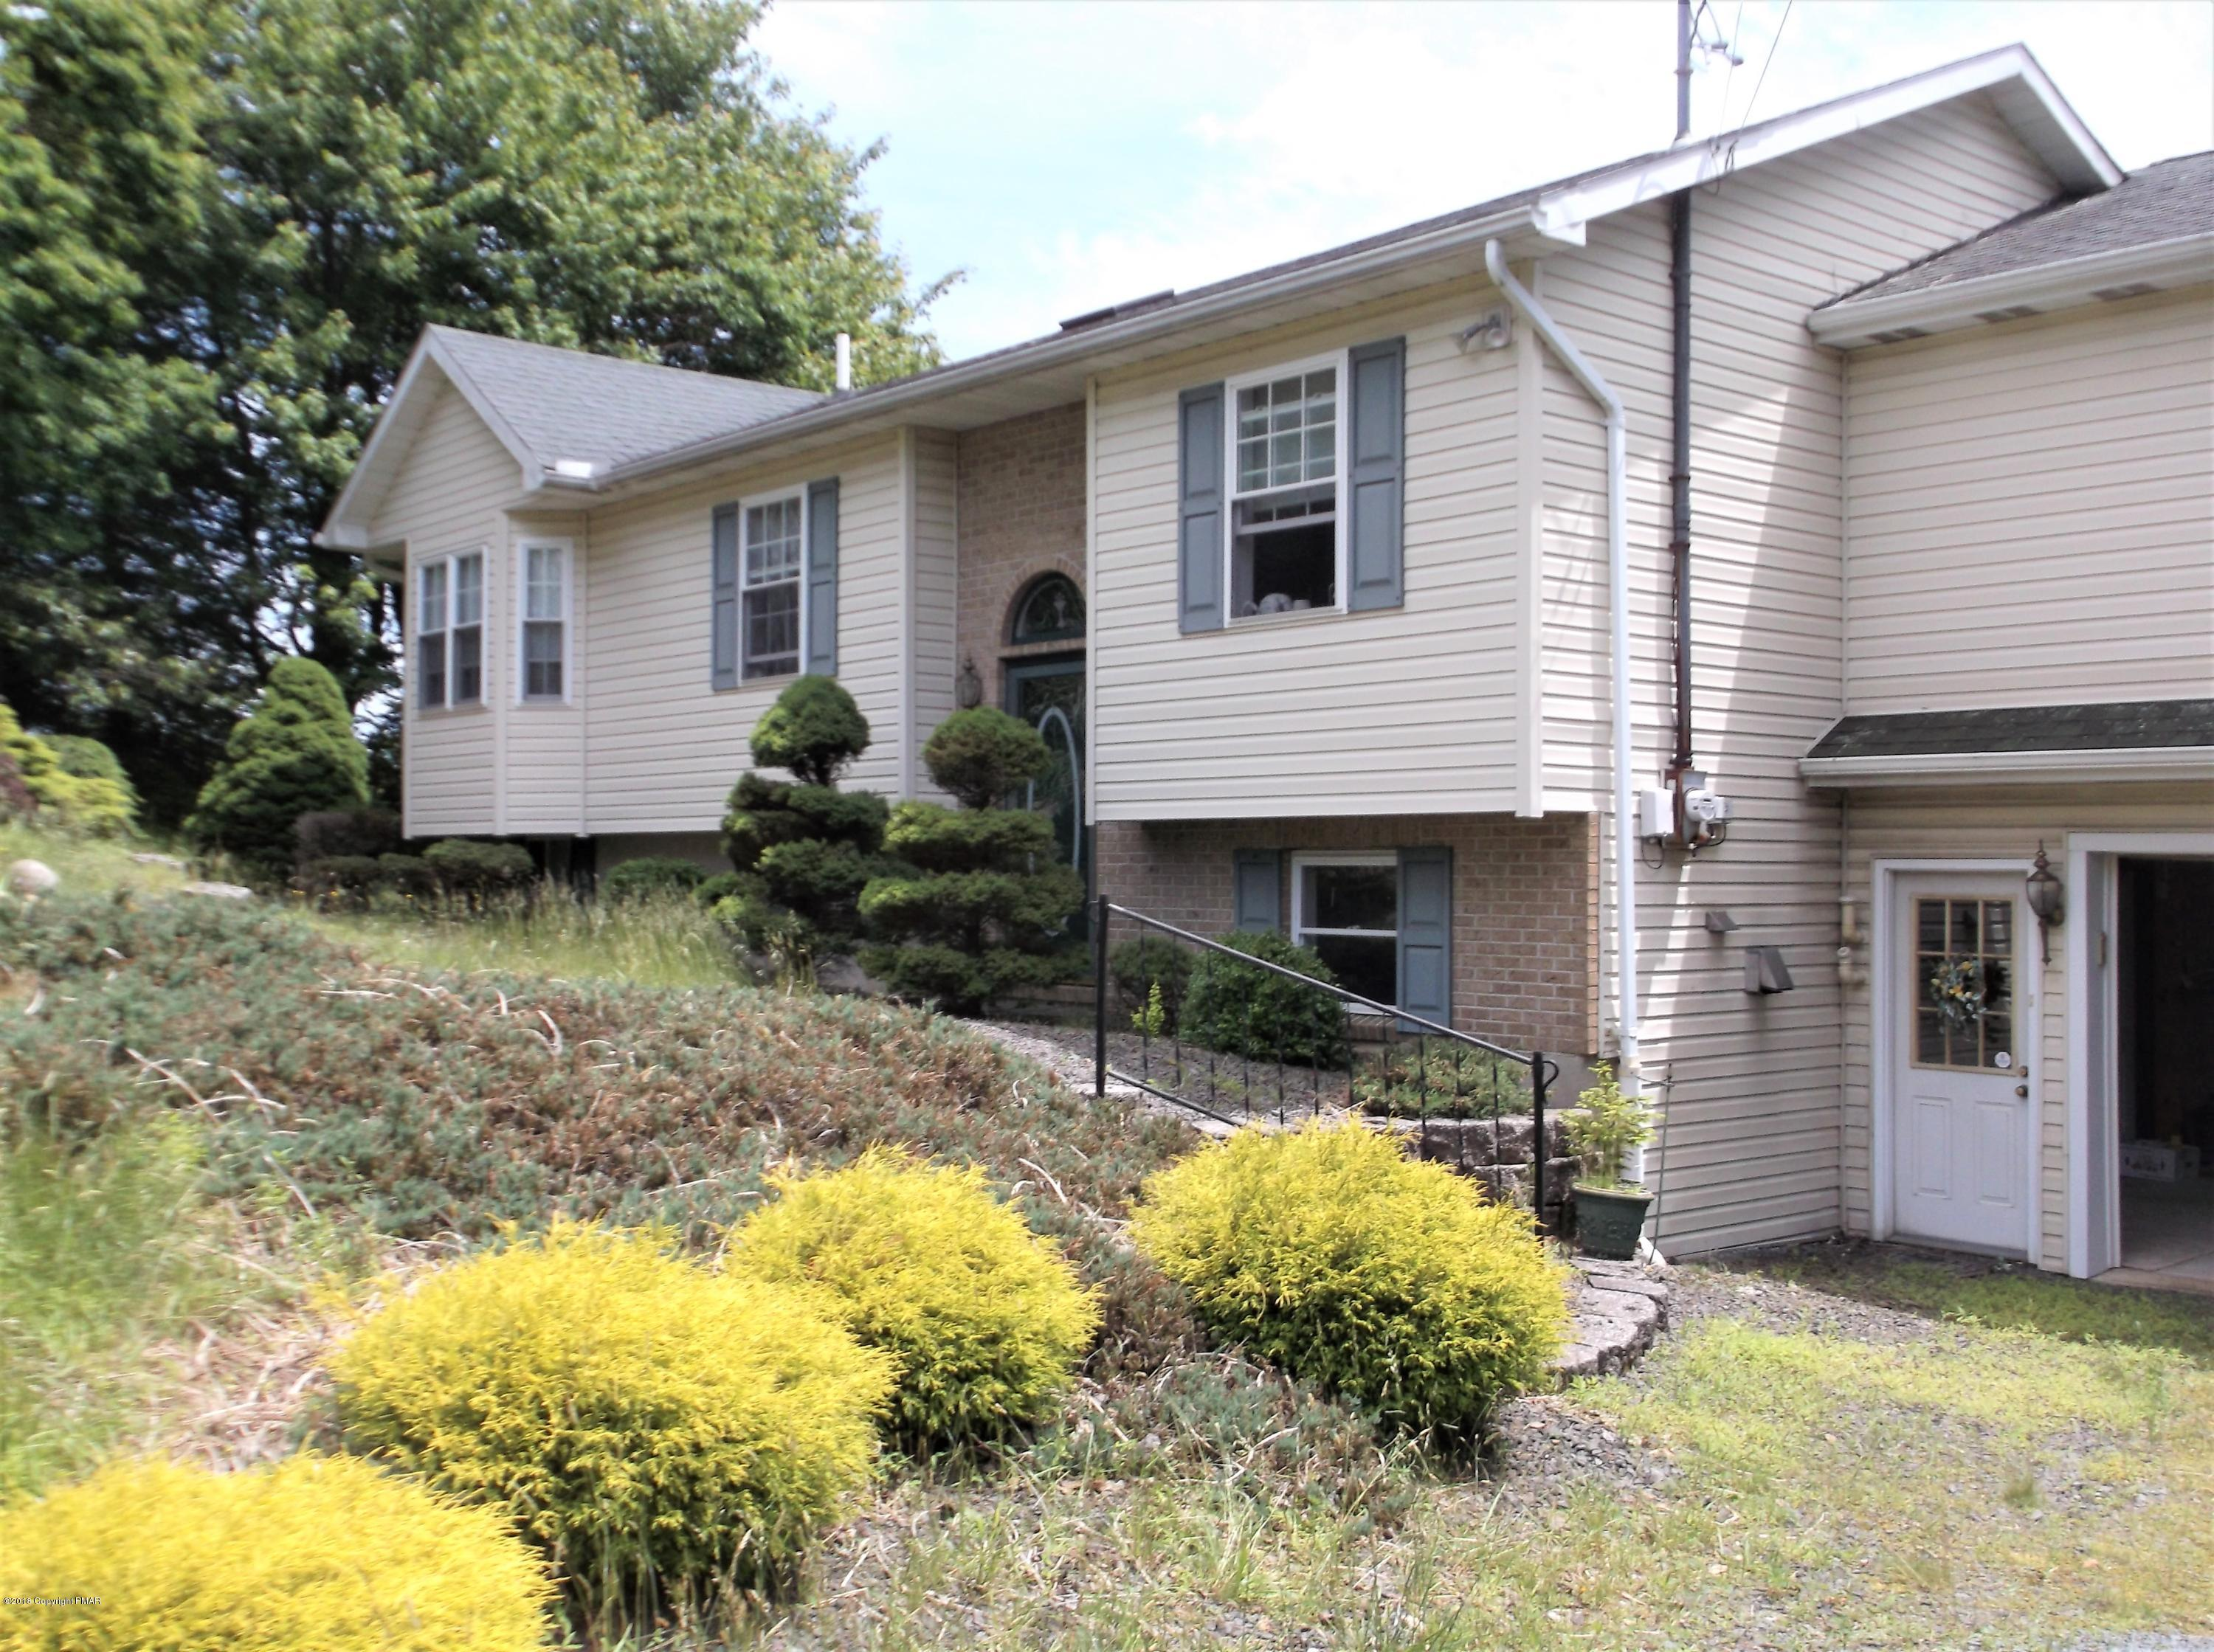 609 Clearview Dr, Long Pond, PA 18334